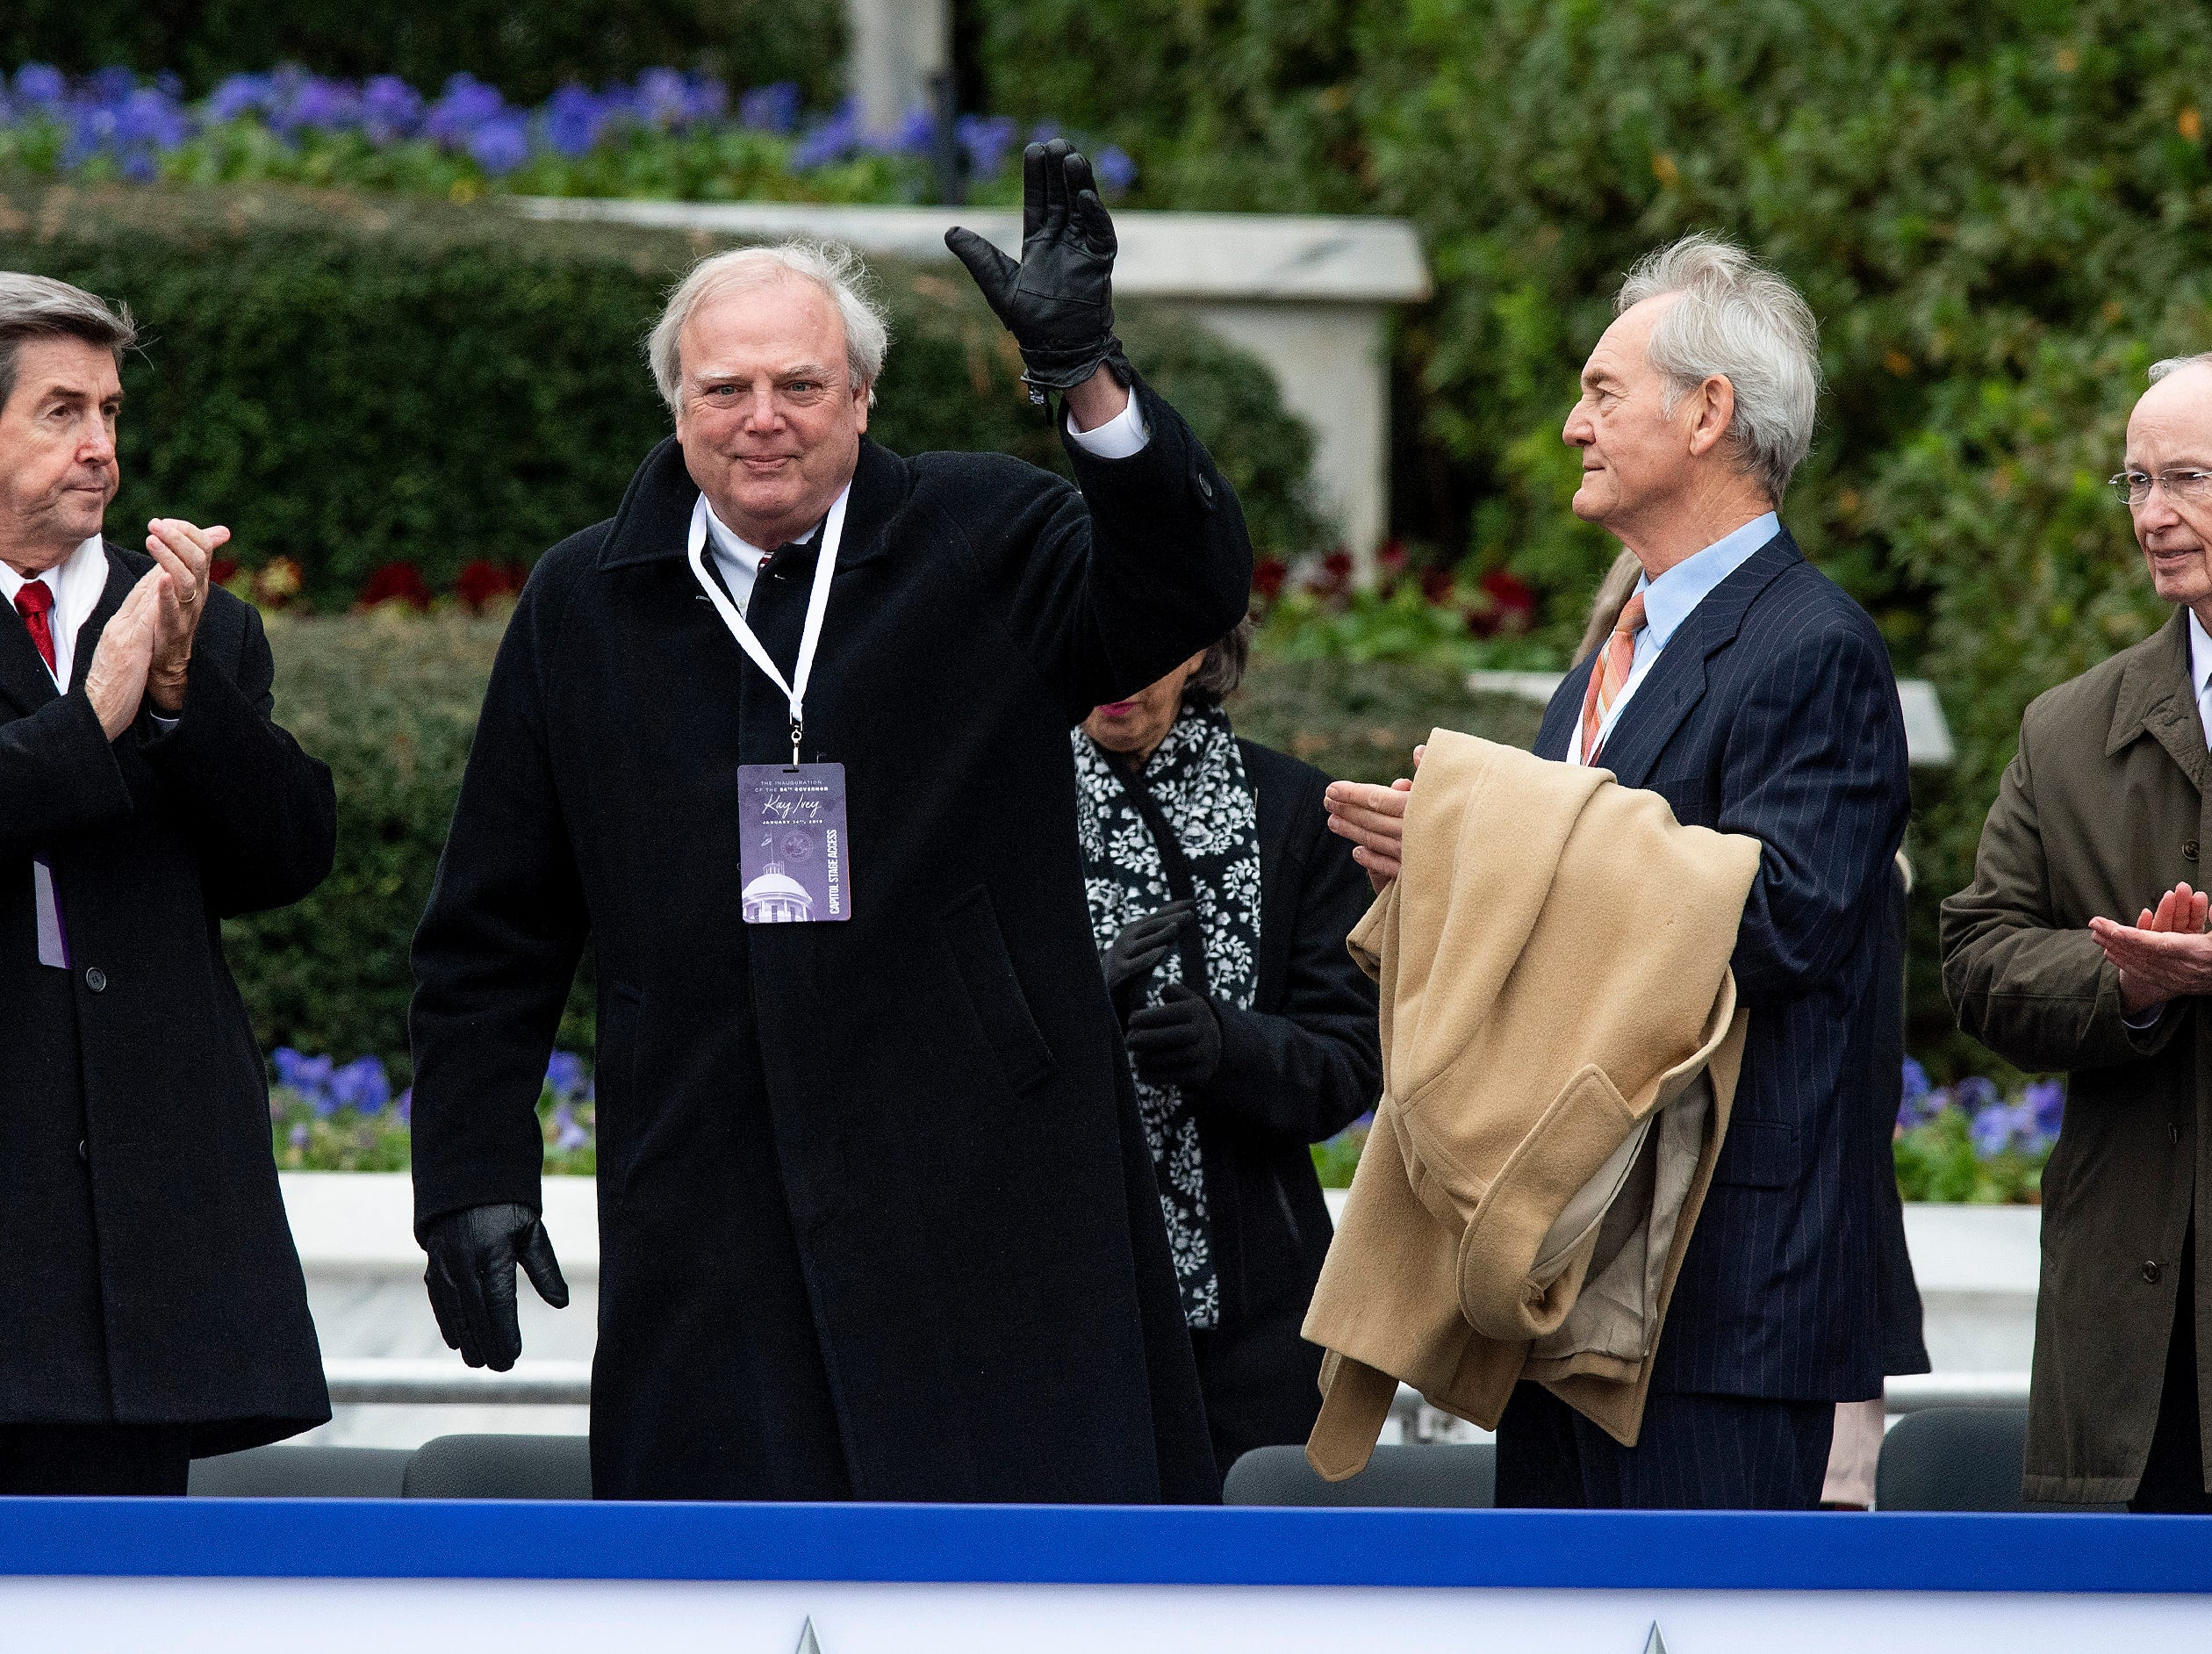 Former Alabama Governors, from left, Bob Riley, Jim Folsom, Jr., Don Siegleman and Robert Bentley during the Inauguration of Governor Kay Ivey on the state capitol steps in Montgomery, Ala., on Monday January 14, 2019.